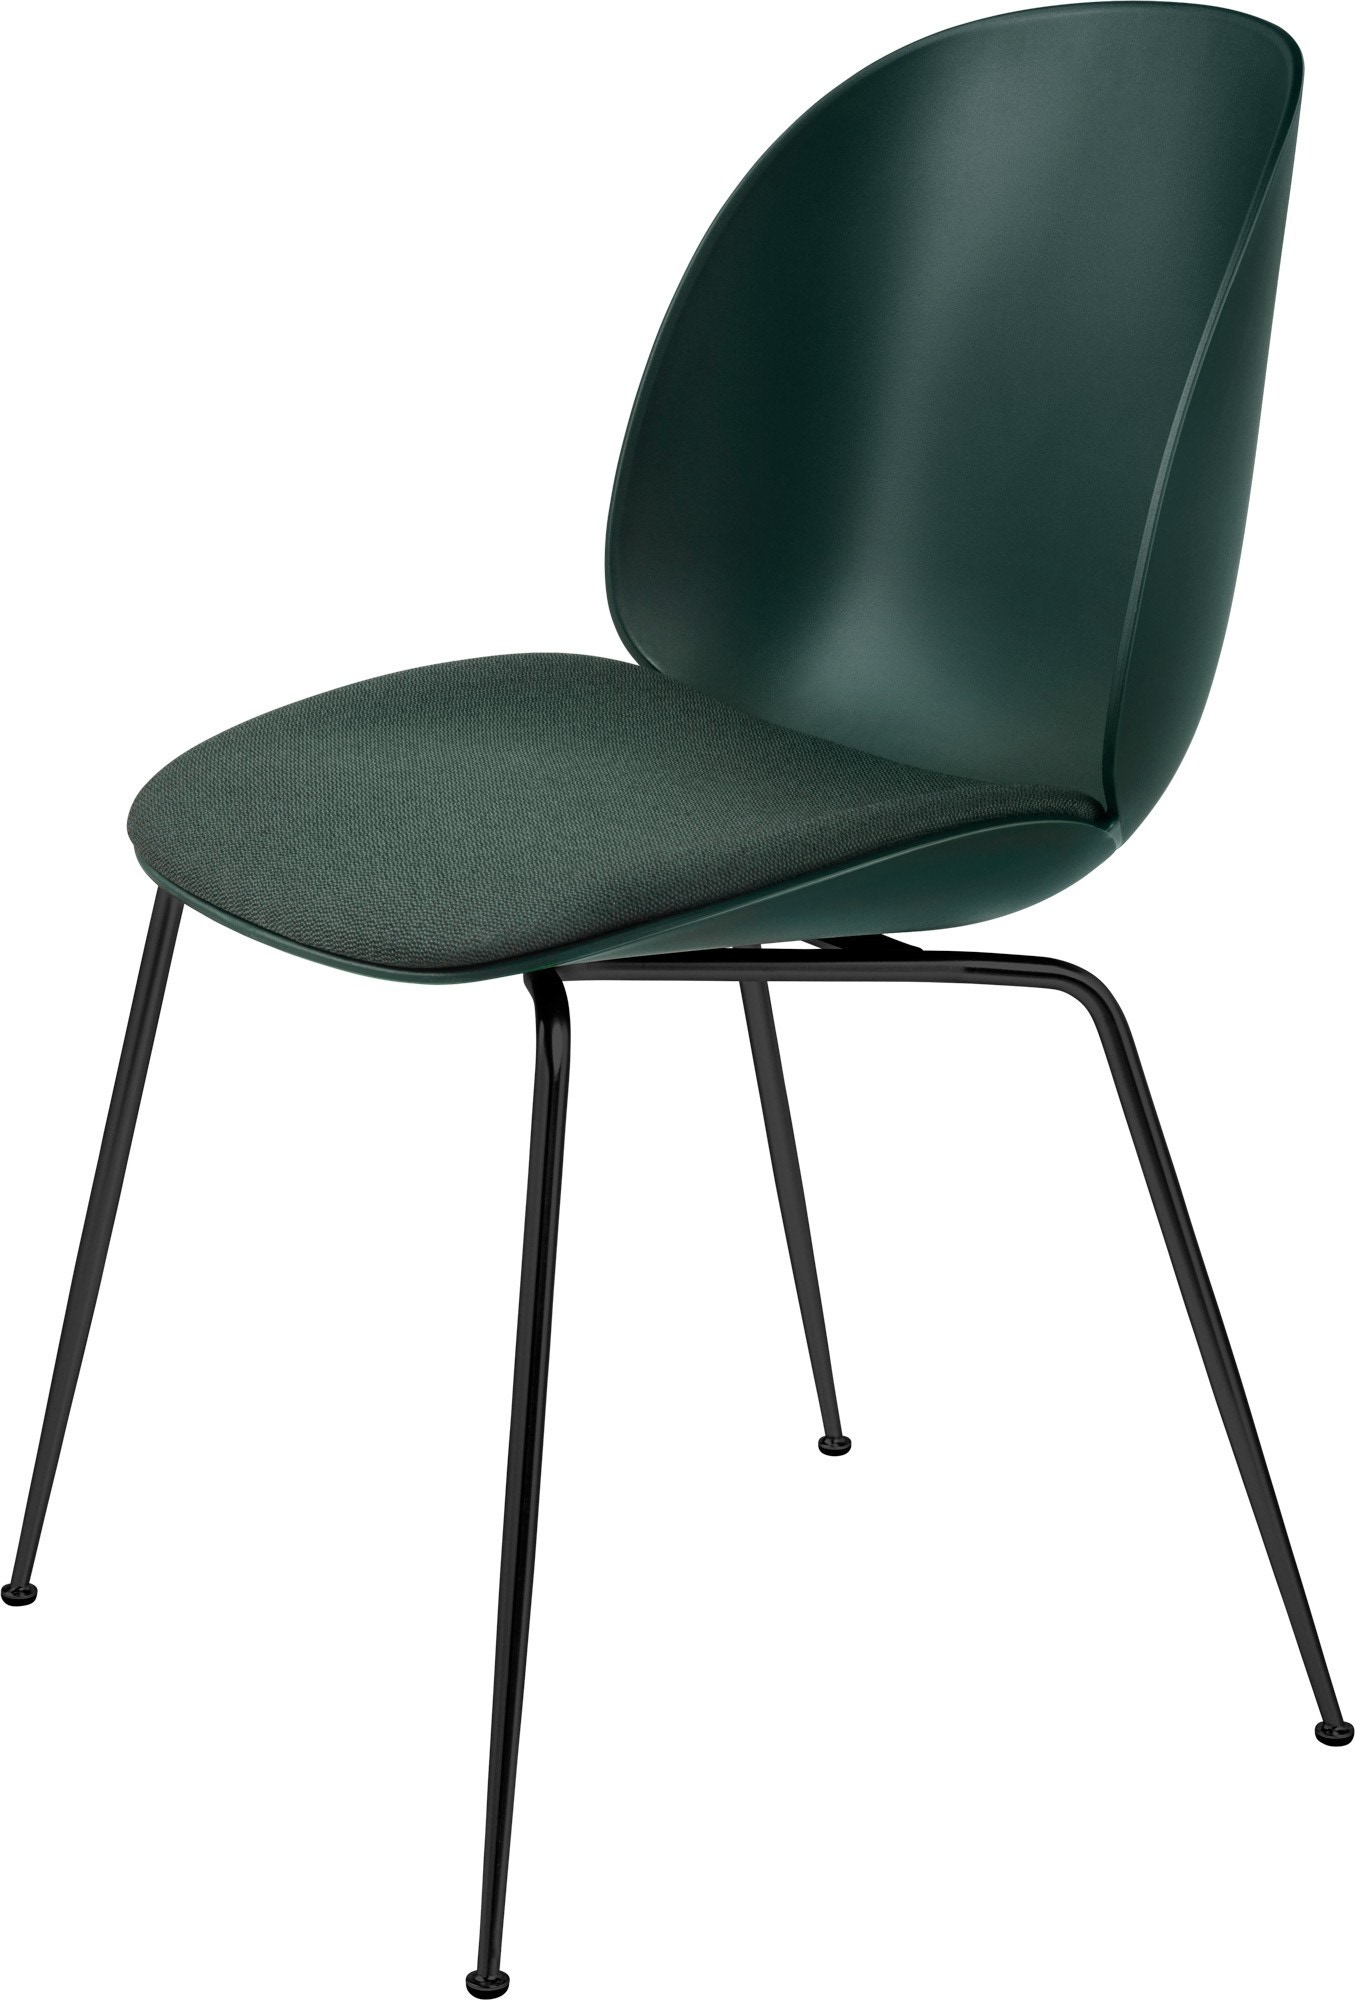 GUBI Beetle Conic Base Dining Chair (Seat Upholstered)